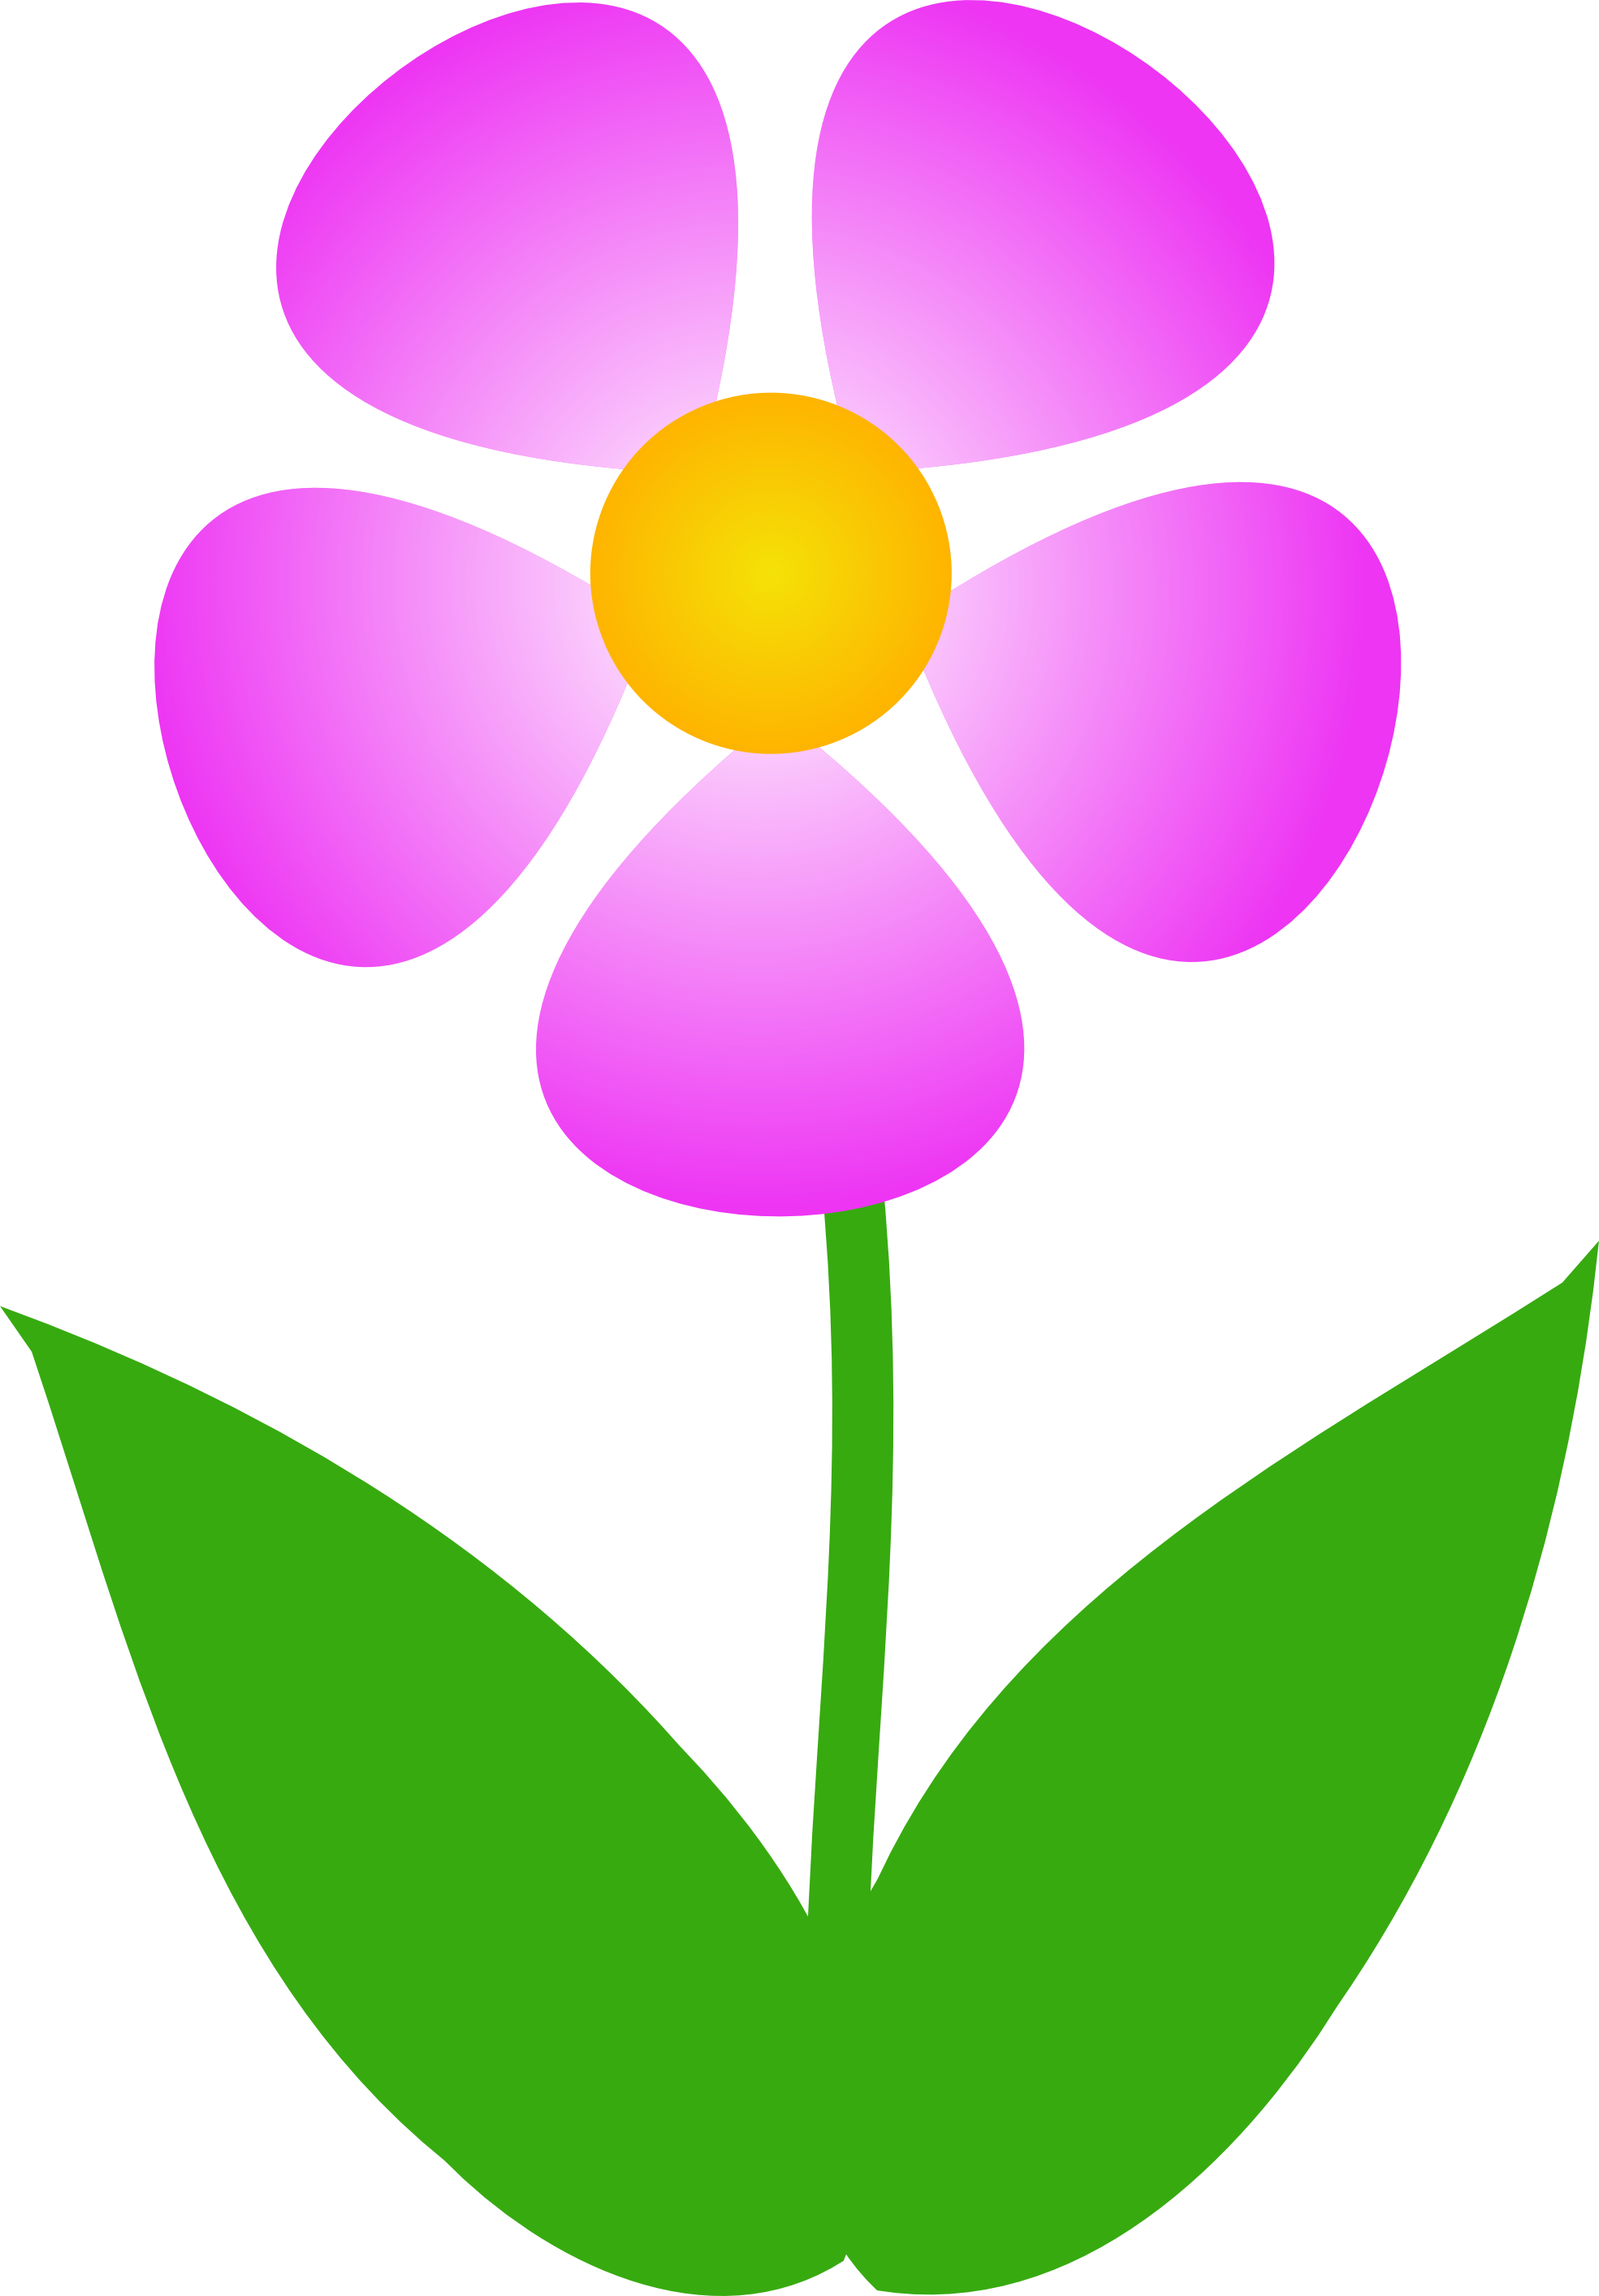 Free images of flowers. Kids clipart flower